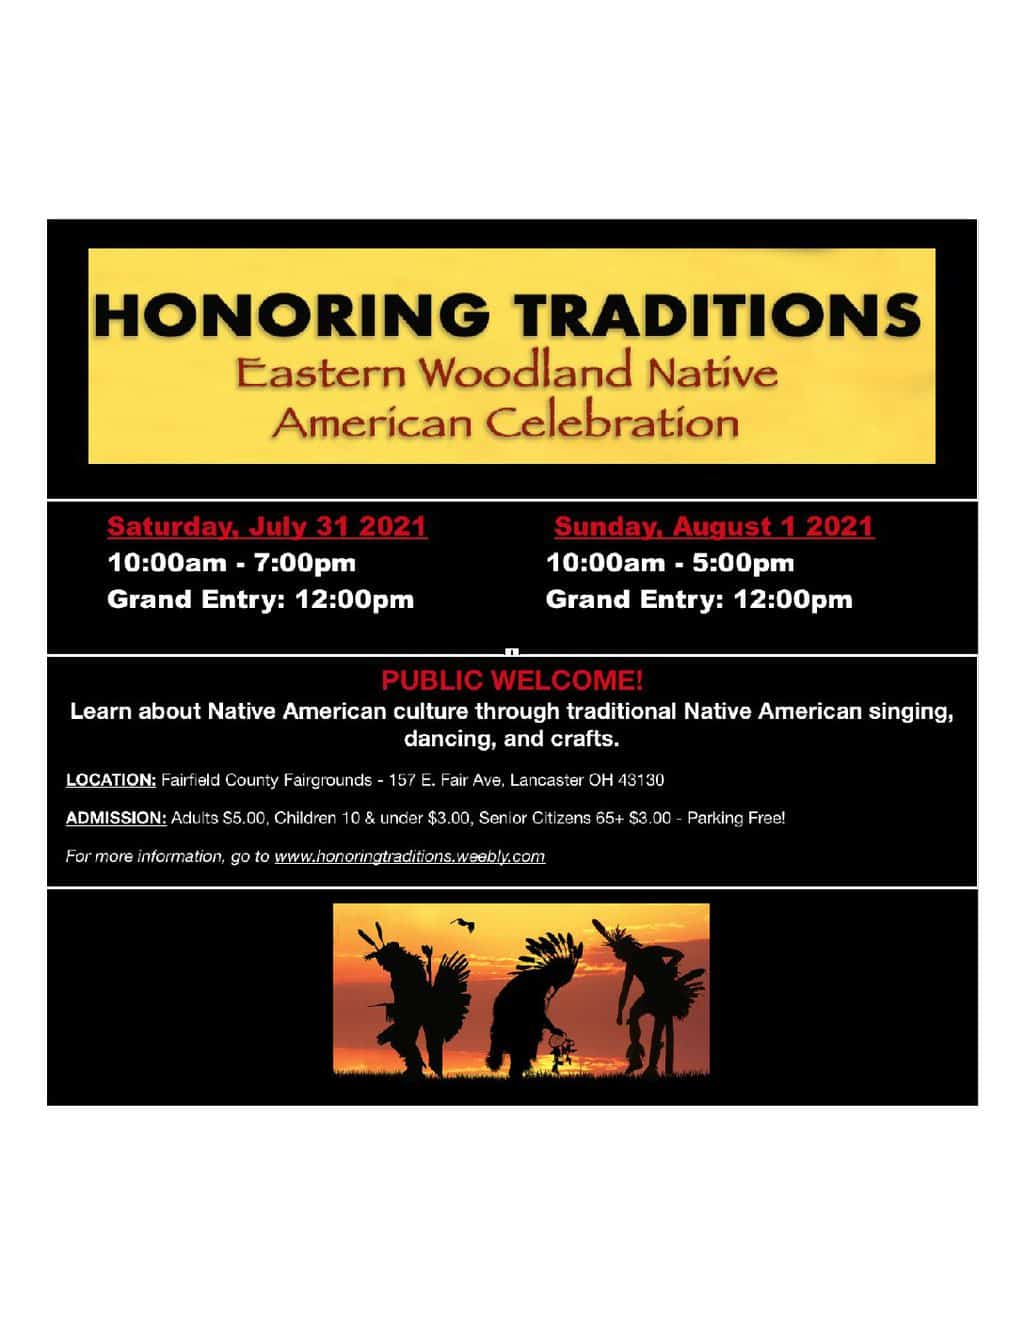 Honoring Traditions - Eastern Woodland Native American Celebration